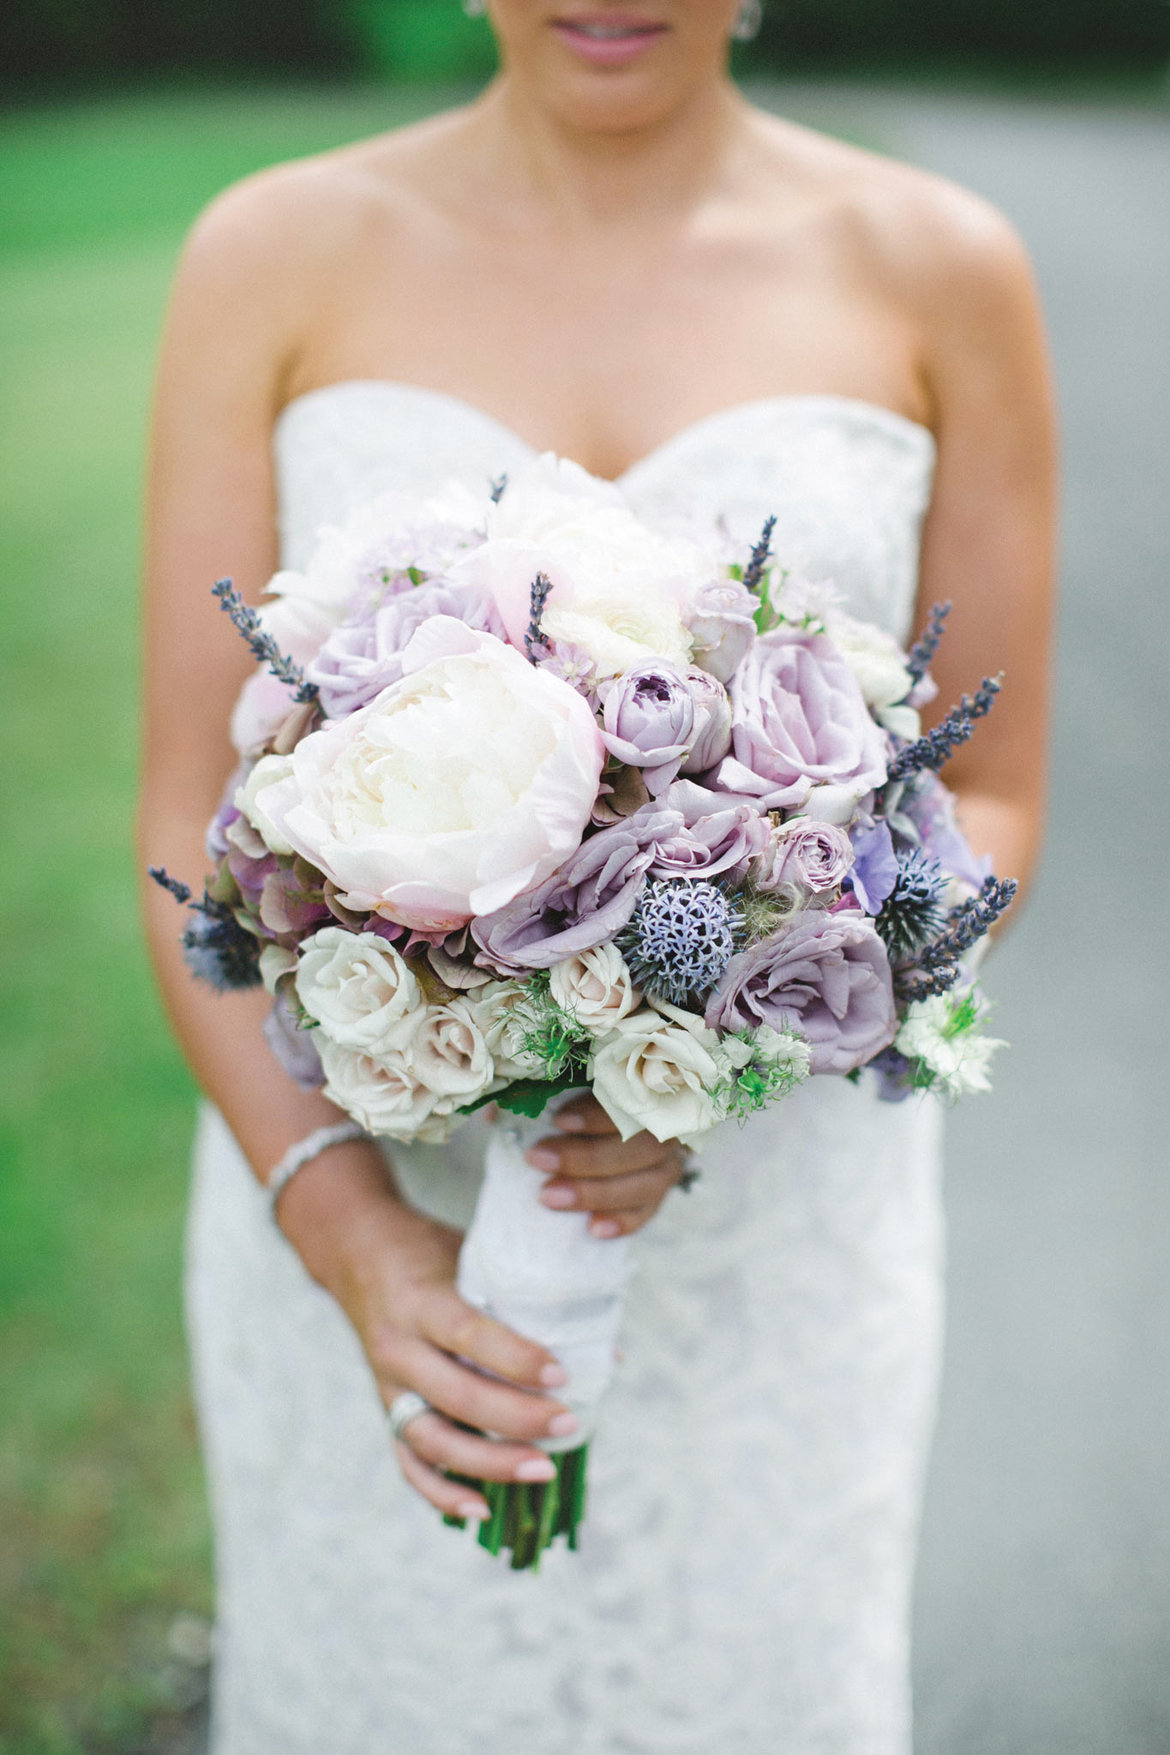 hilltop chic wedding inspiration